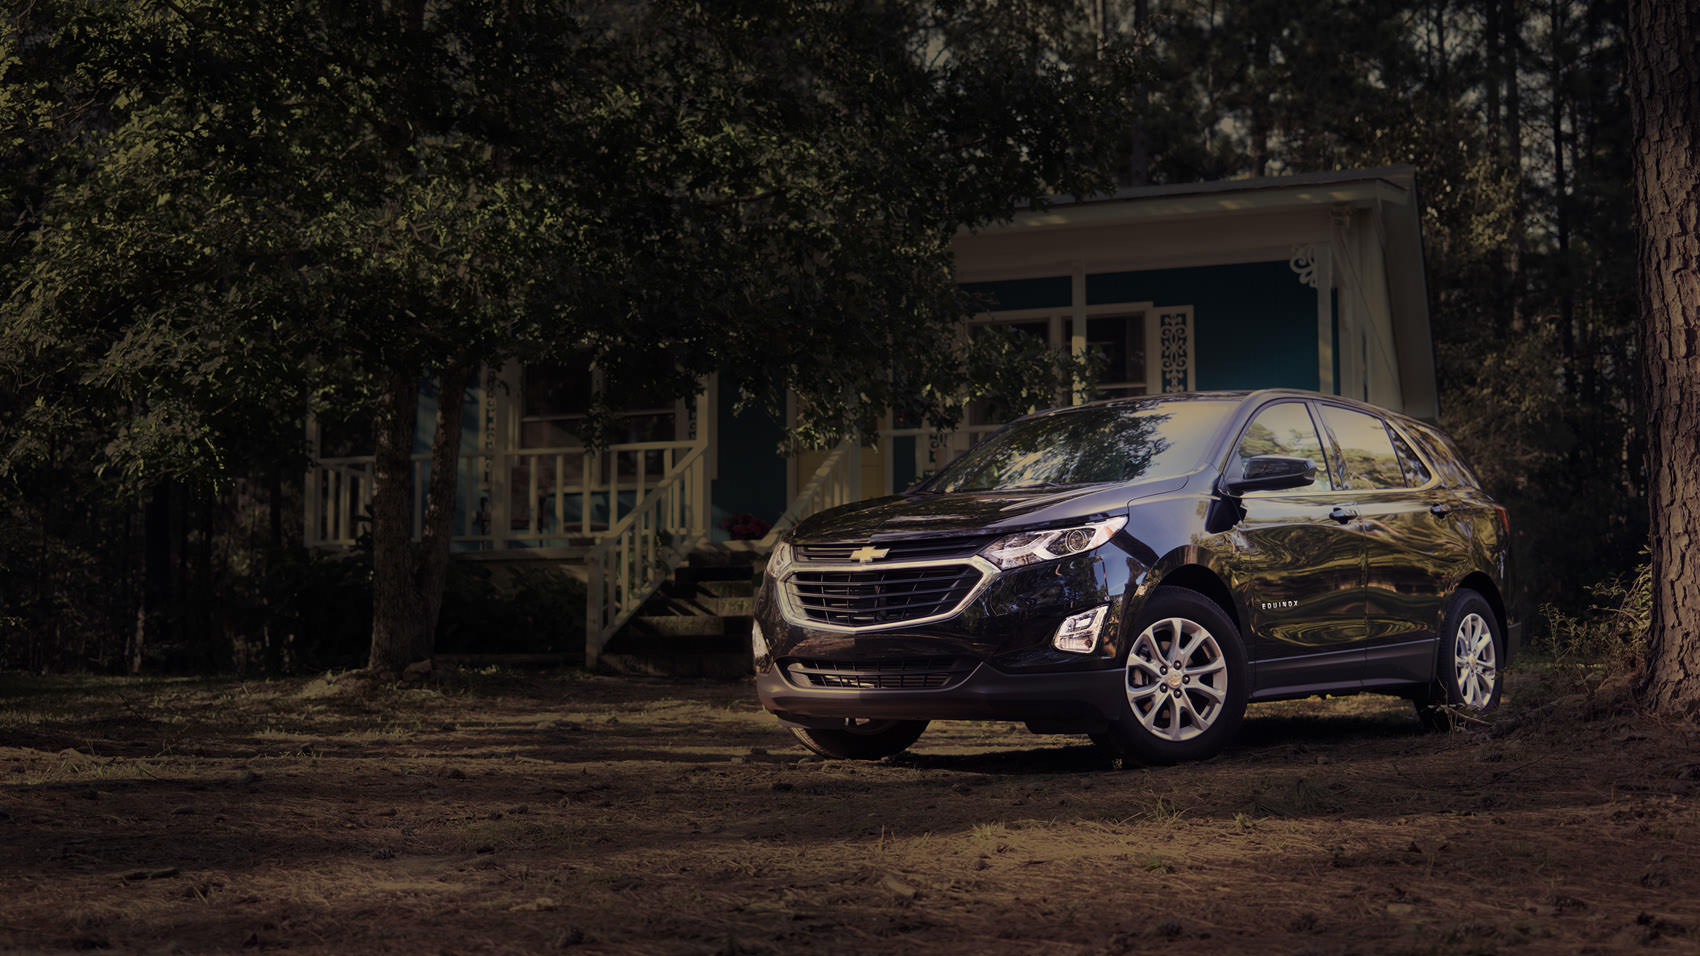 Chevrolet Equinox in the Woods deep by Sascha Hauk